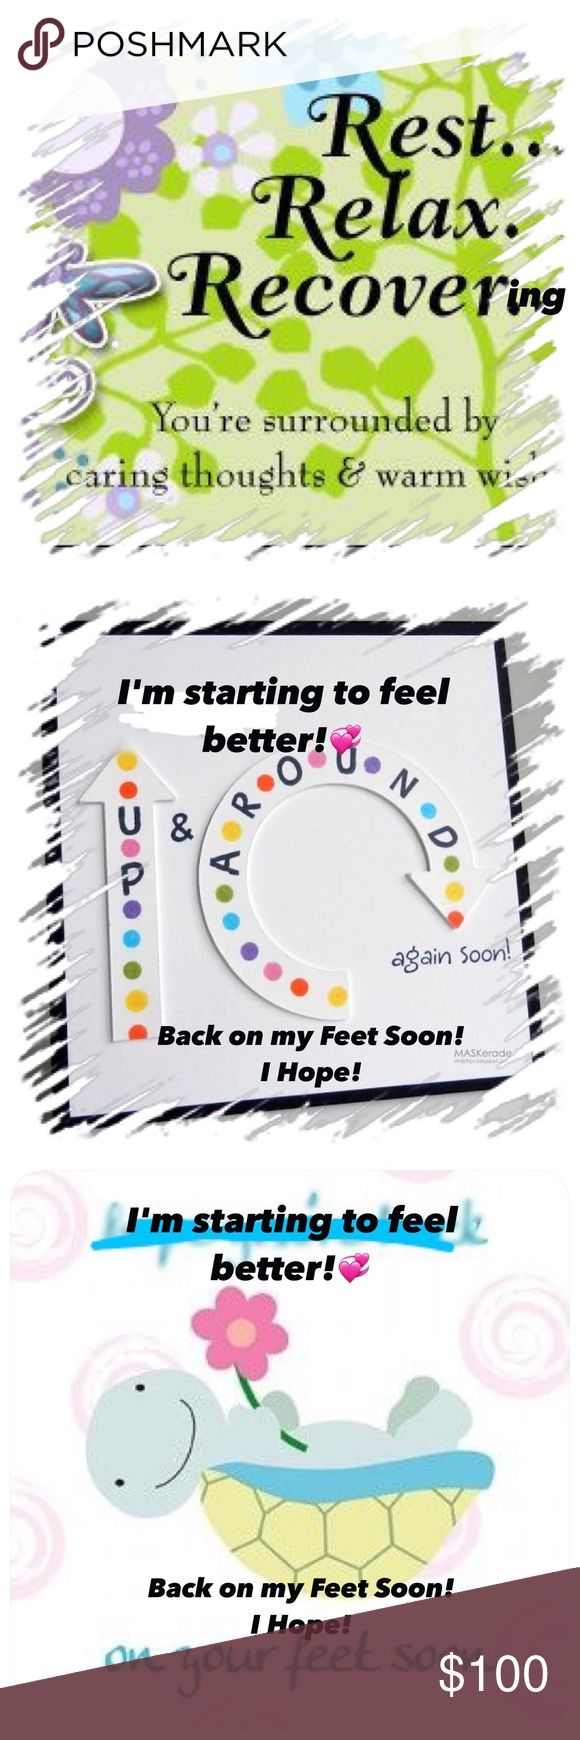 💞Hoping 2-B On site more Soon! Recovering! 💞Surgery 2 remove 2 Cancer areas was done Wednesday (02/22)/Mayo Clinic! Surgery went well! Came home feeling no pain? UNTIL! Pain Blocks wore off! OMG! Thought a truck hit me? Since then been taking pain medicine,sleeping, & chging bandages alot! Tom, is now my fulltime Nurse when MAJOR Blizzard hit! But w instruction he is getting very good at changing bandages! Was awake more Saturday. Hope 2 back on site ✔ing-in more! Thanks To all My Posh…